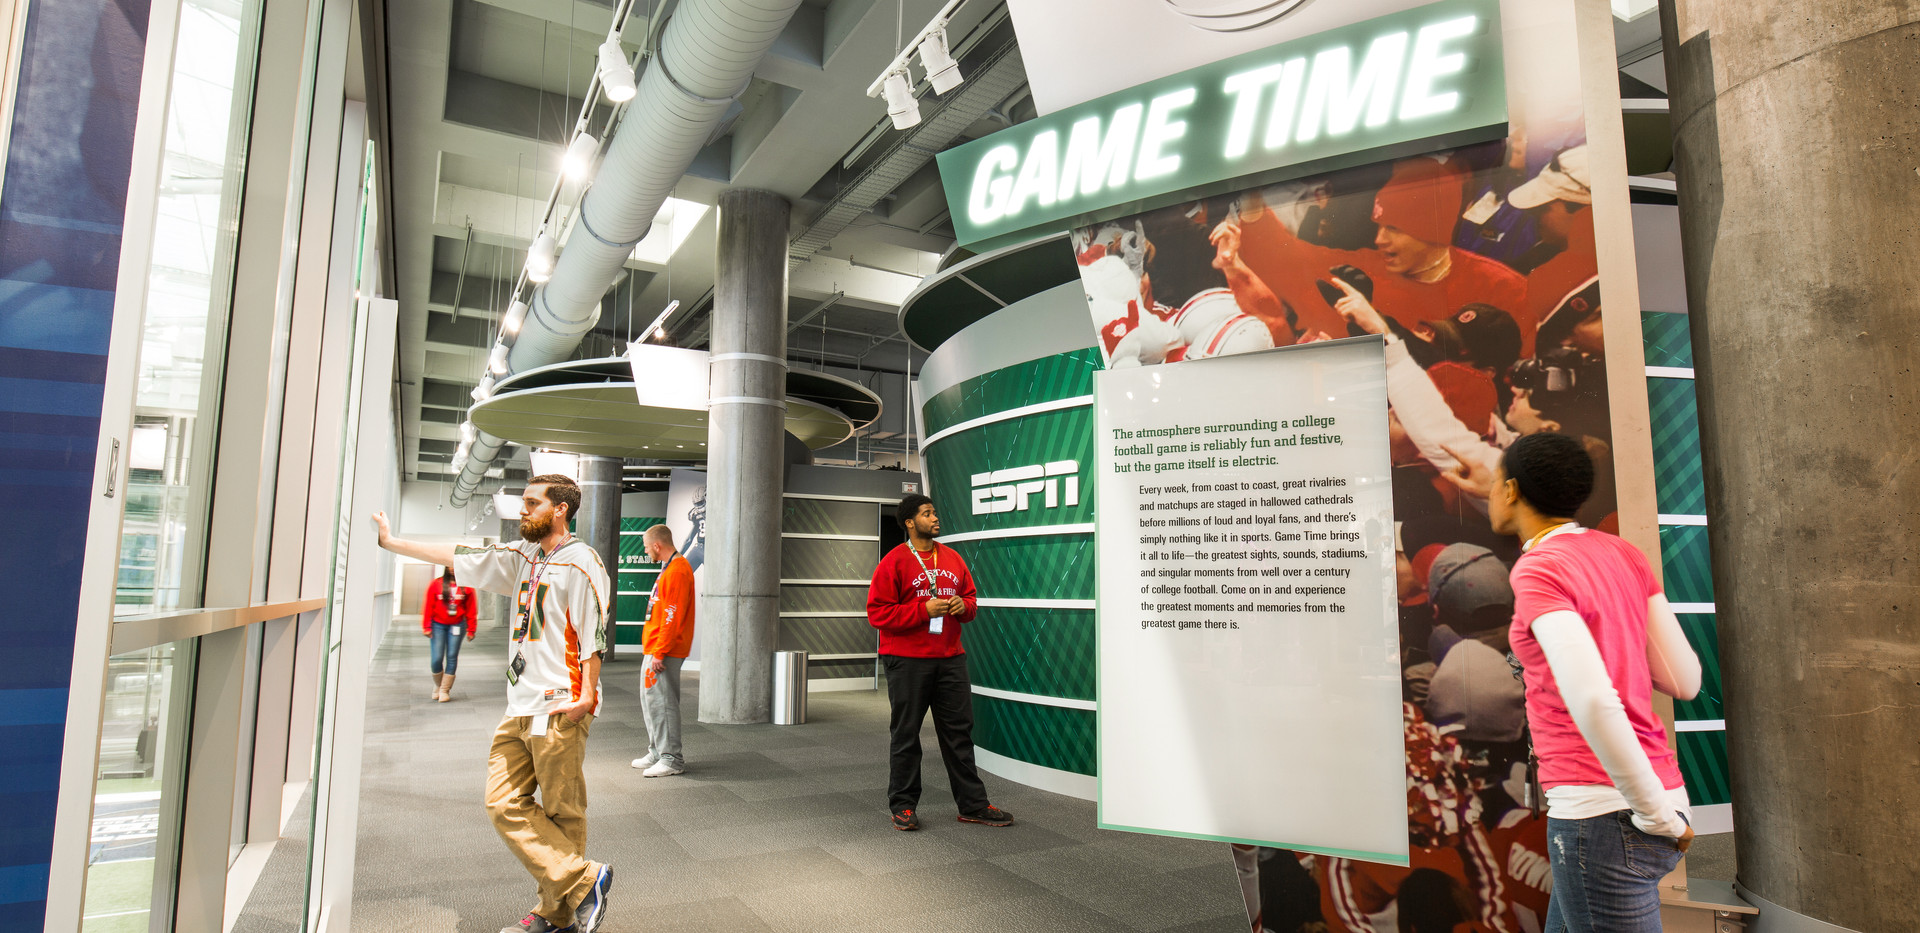 College Football Hall of Fame AT&T Game Time